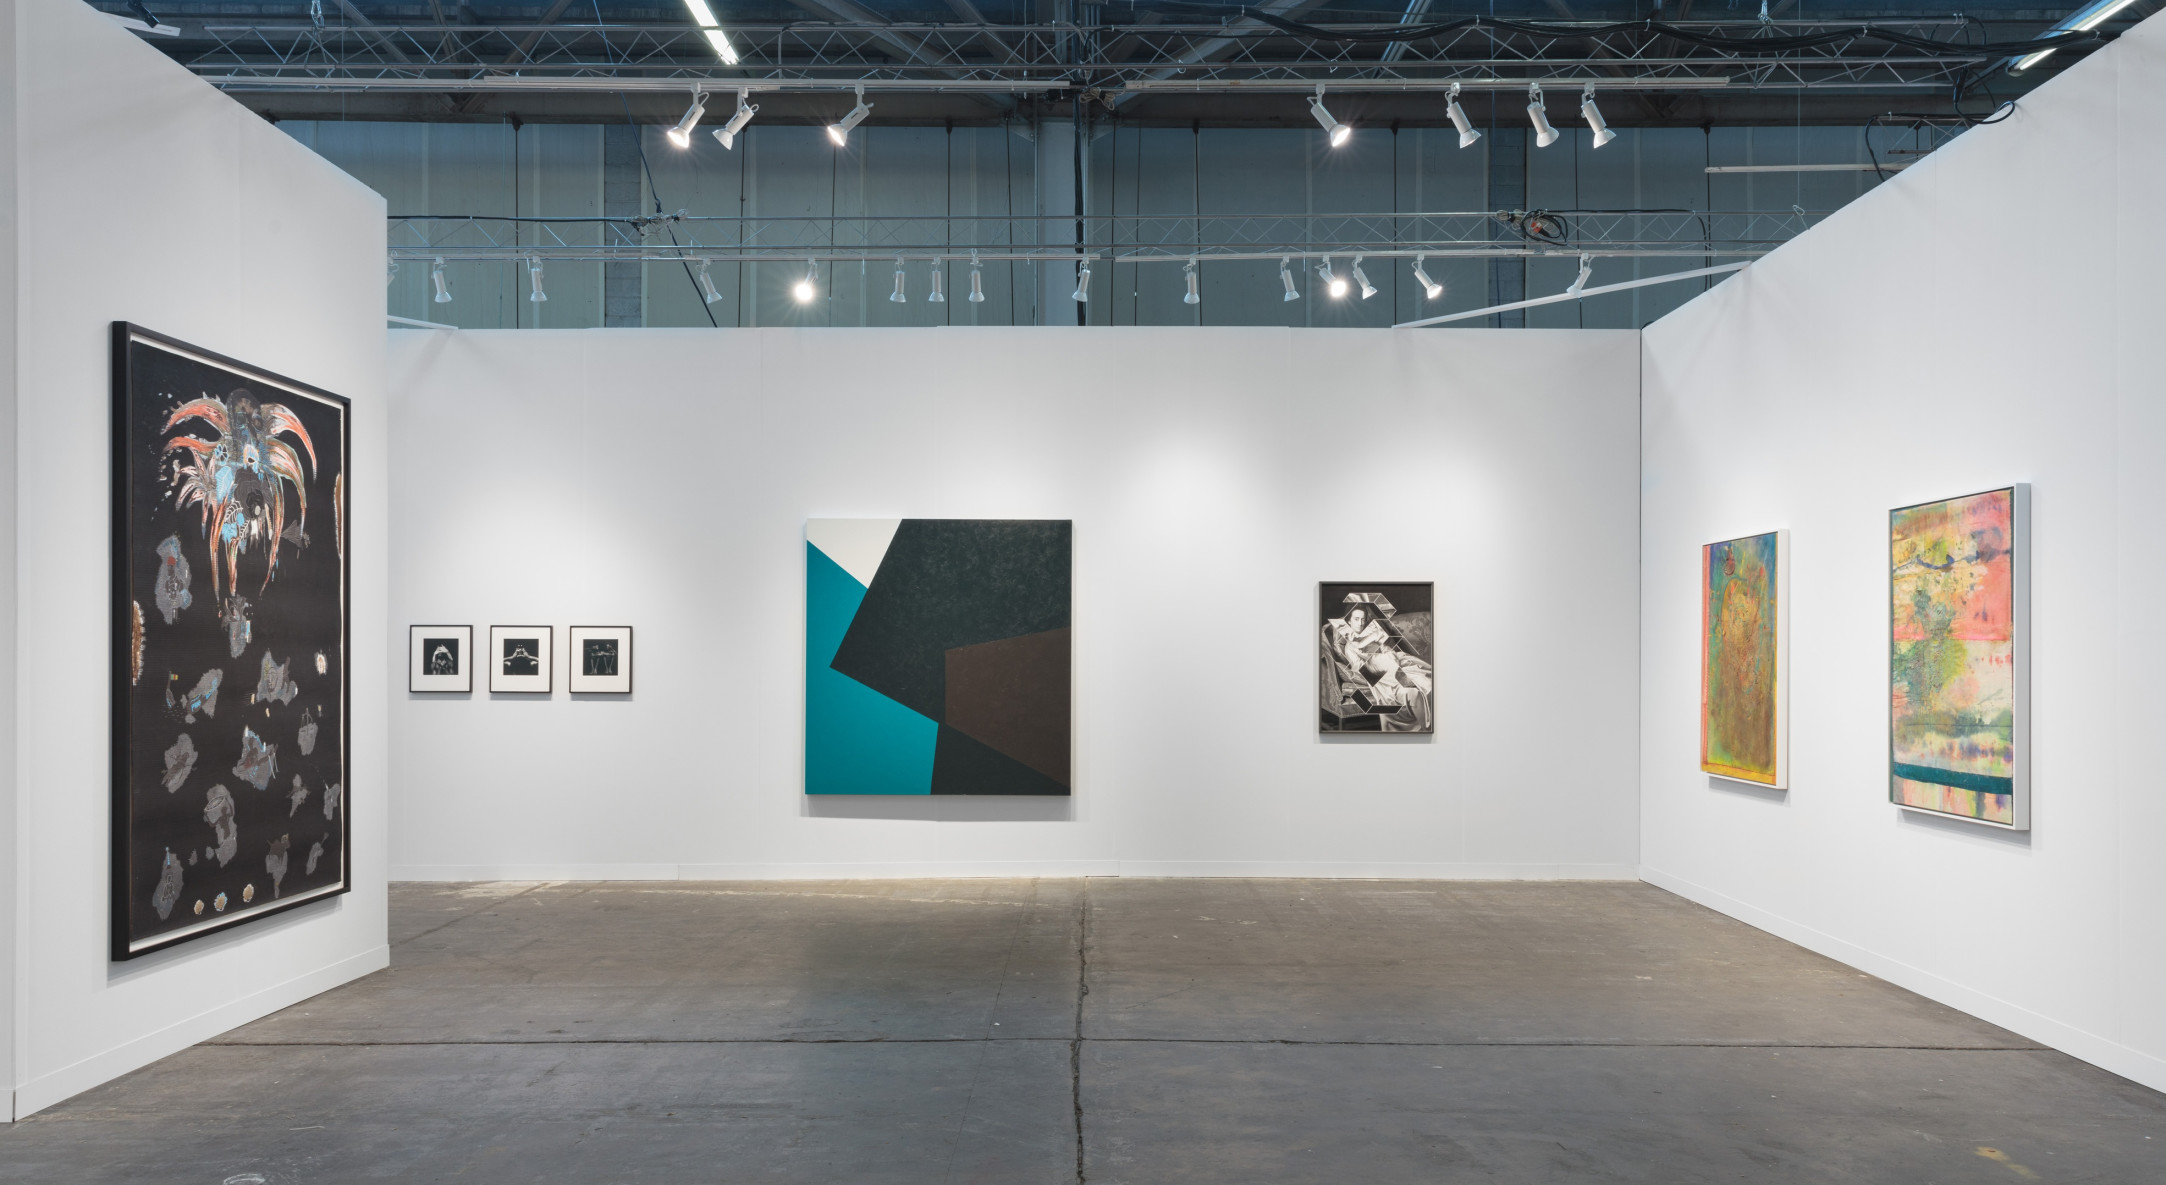 Installation view of Hales Gallery booth at The Armory Show 2019